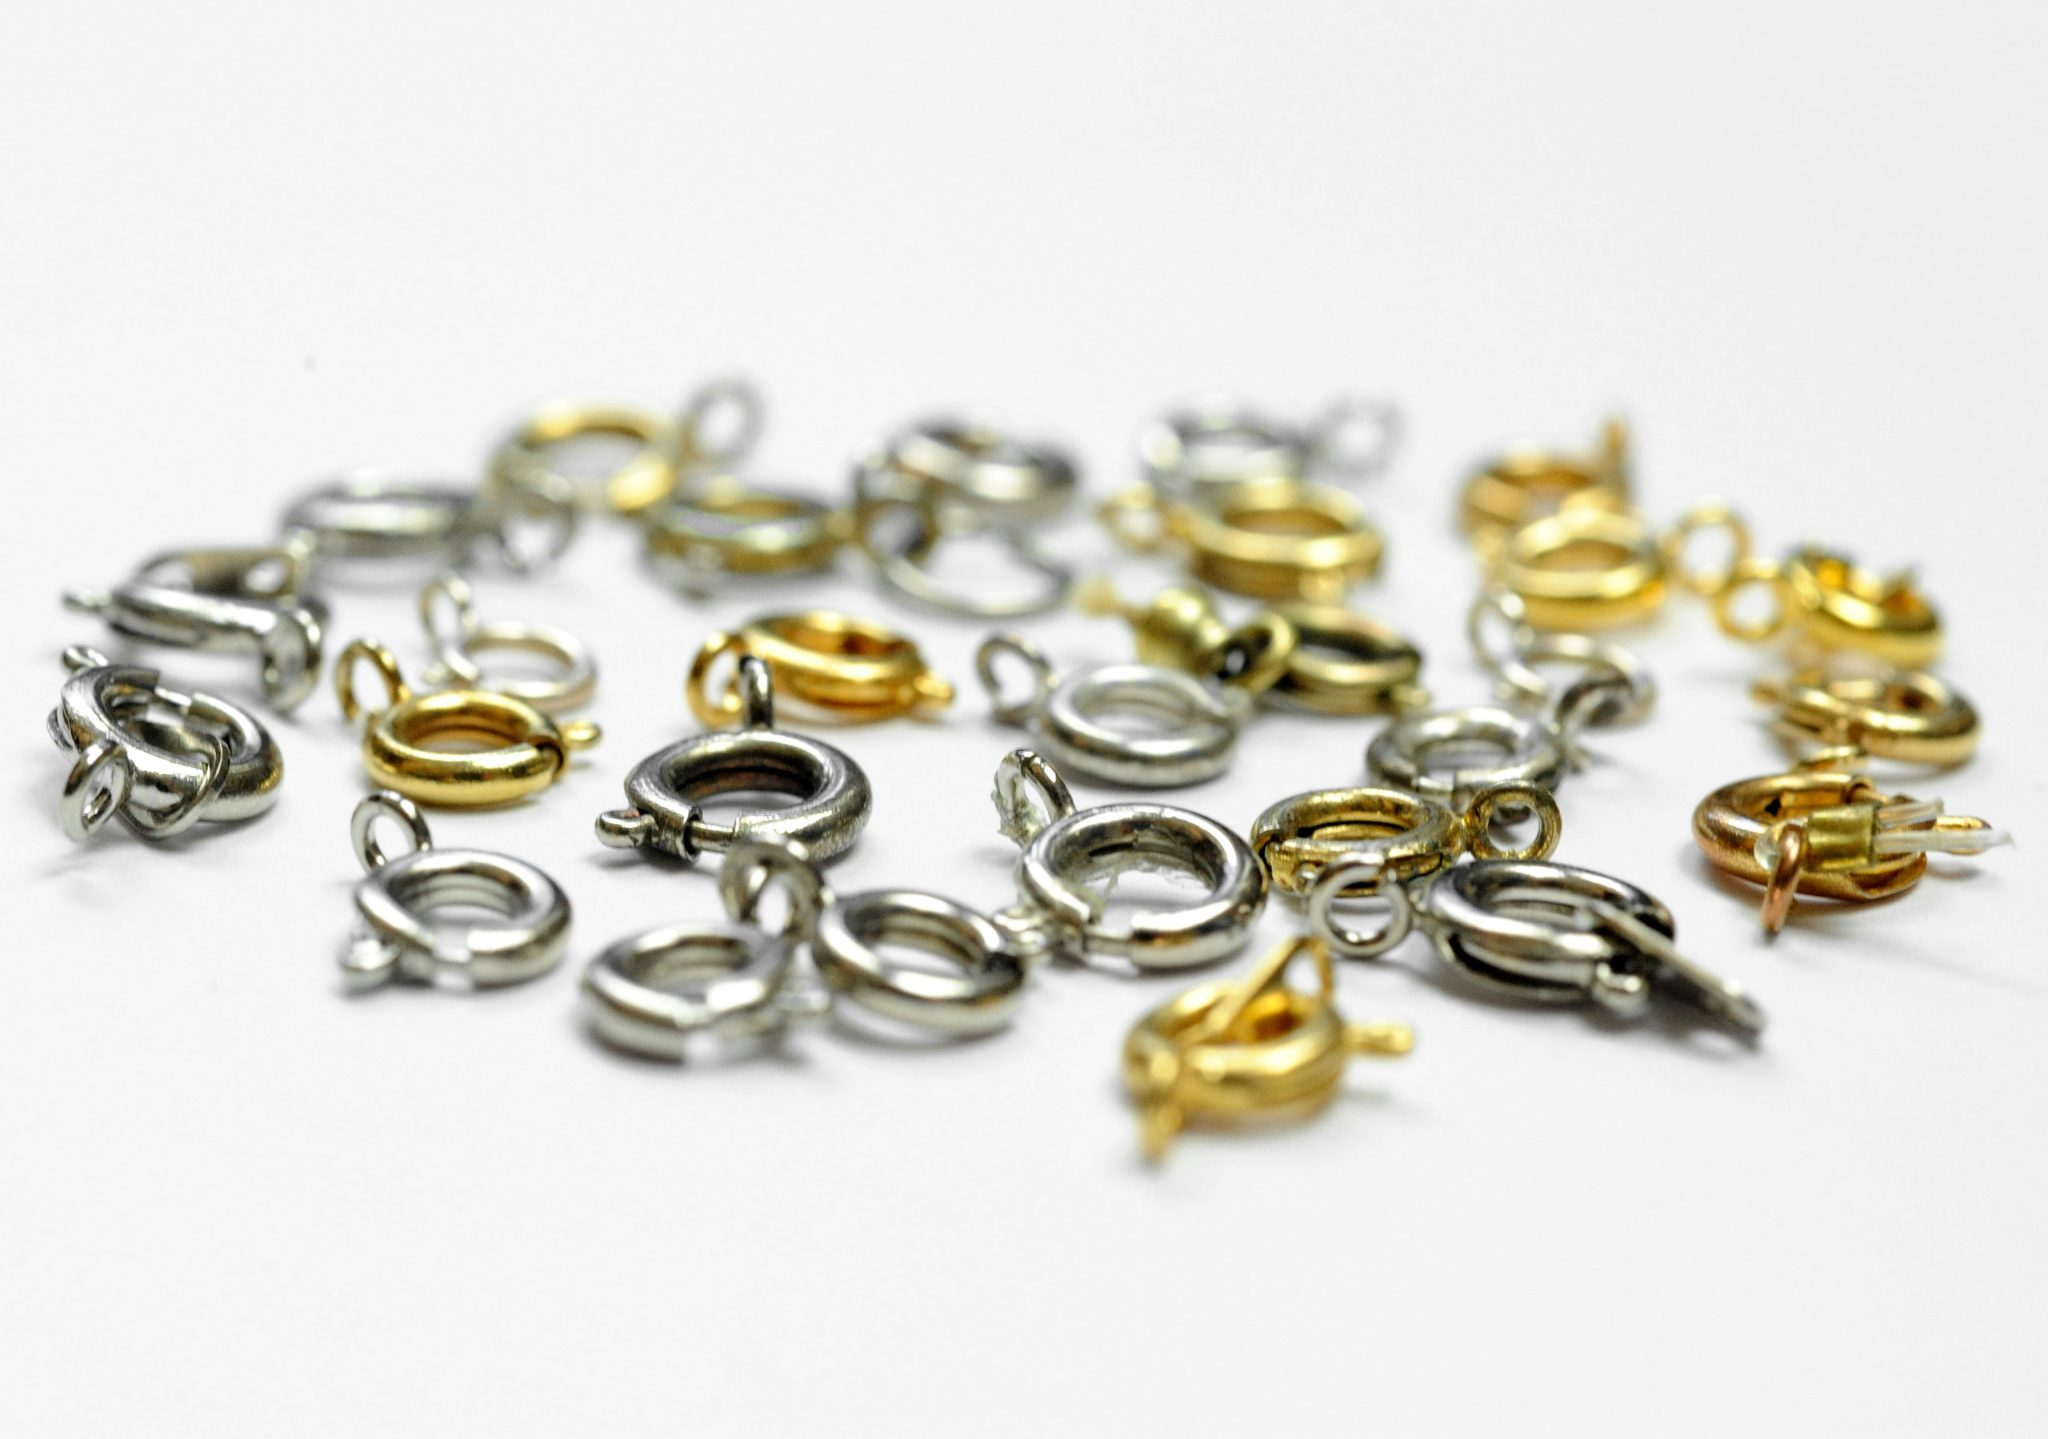 5 Grams of Mixed Metal Spring Rings